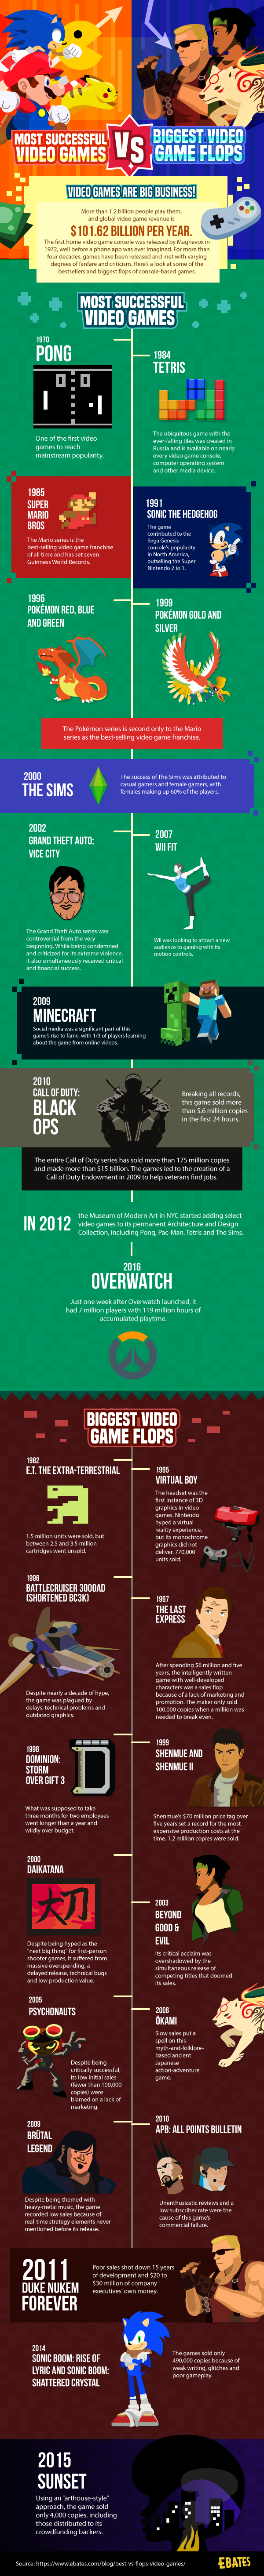 Video Games Throughout The Decades- Biggest Hits Vs Biggest Flops! - Infographic